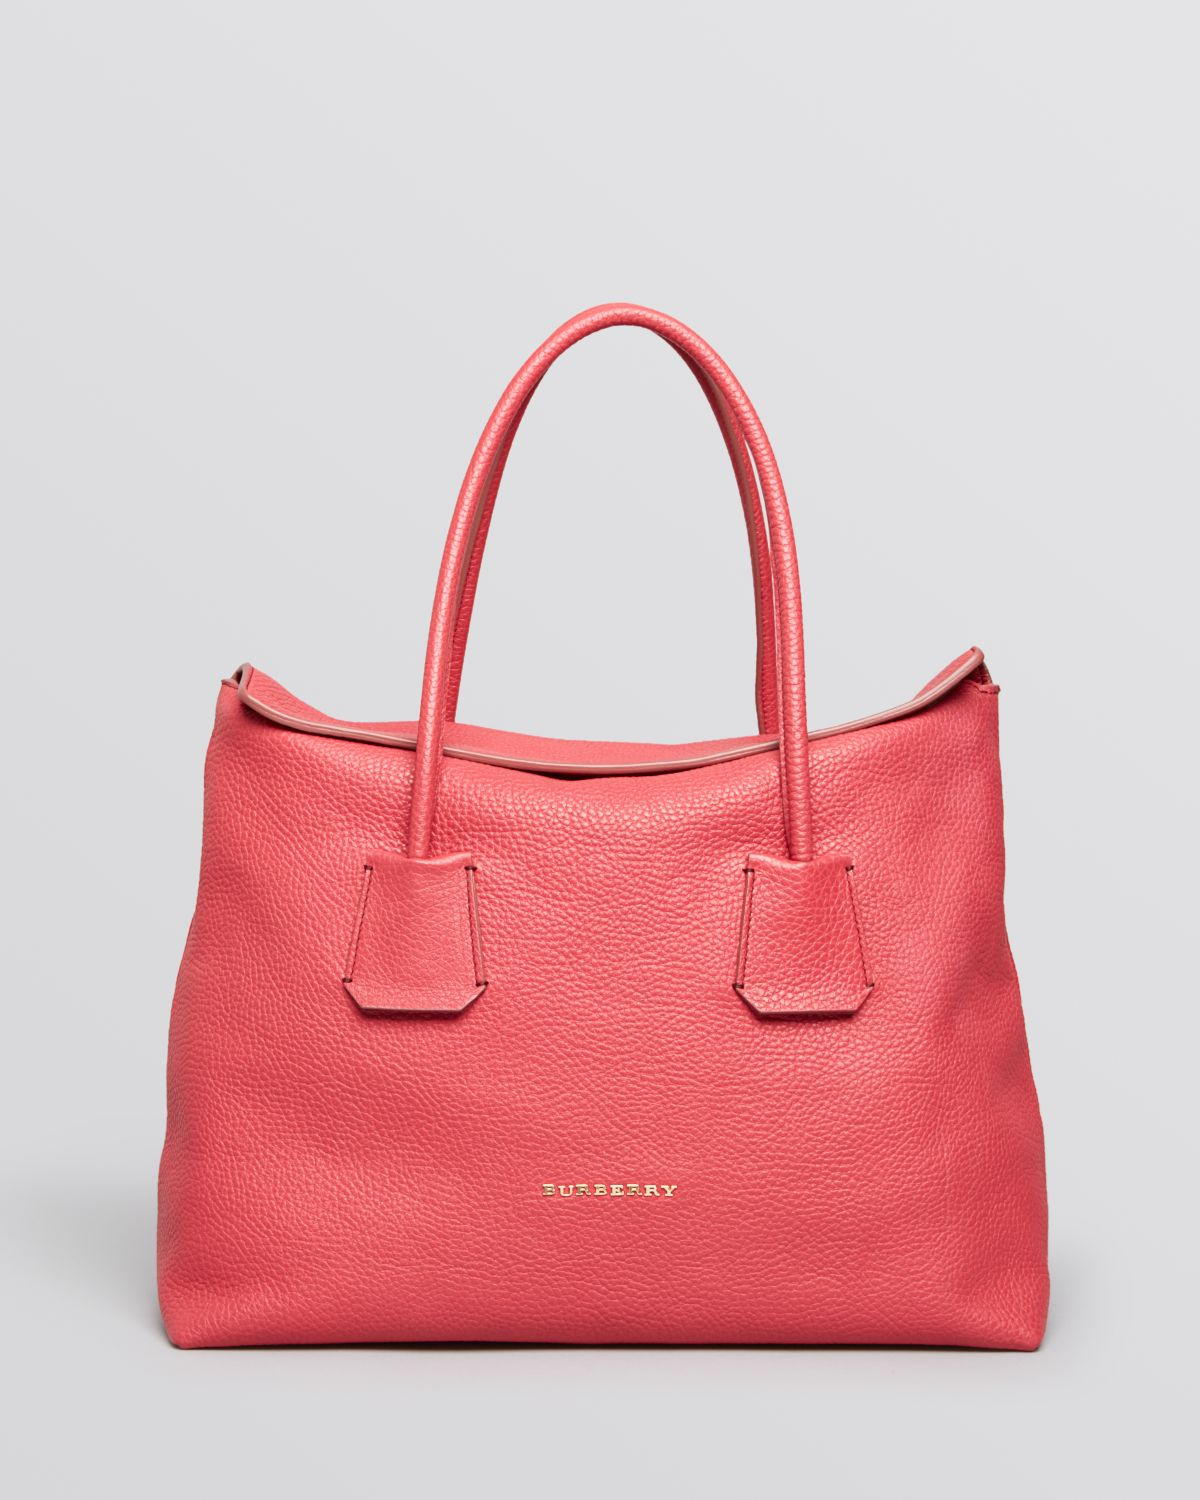 Lyst - Burberry Tote London Grainy Leather Medium Baynard in Pink 0addd1e24b0bb